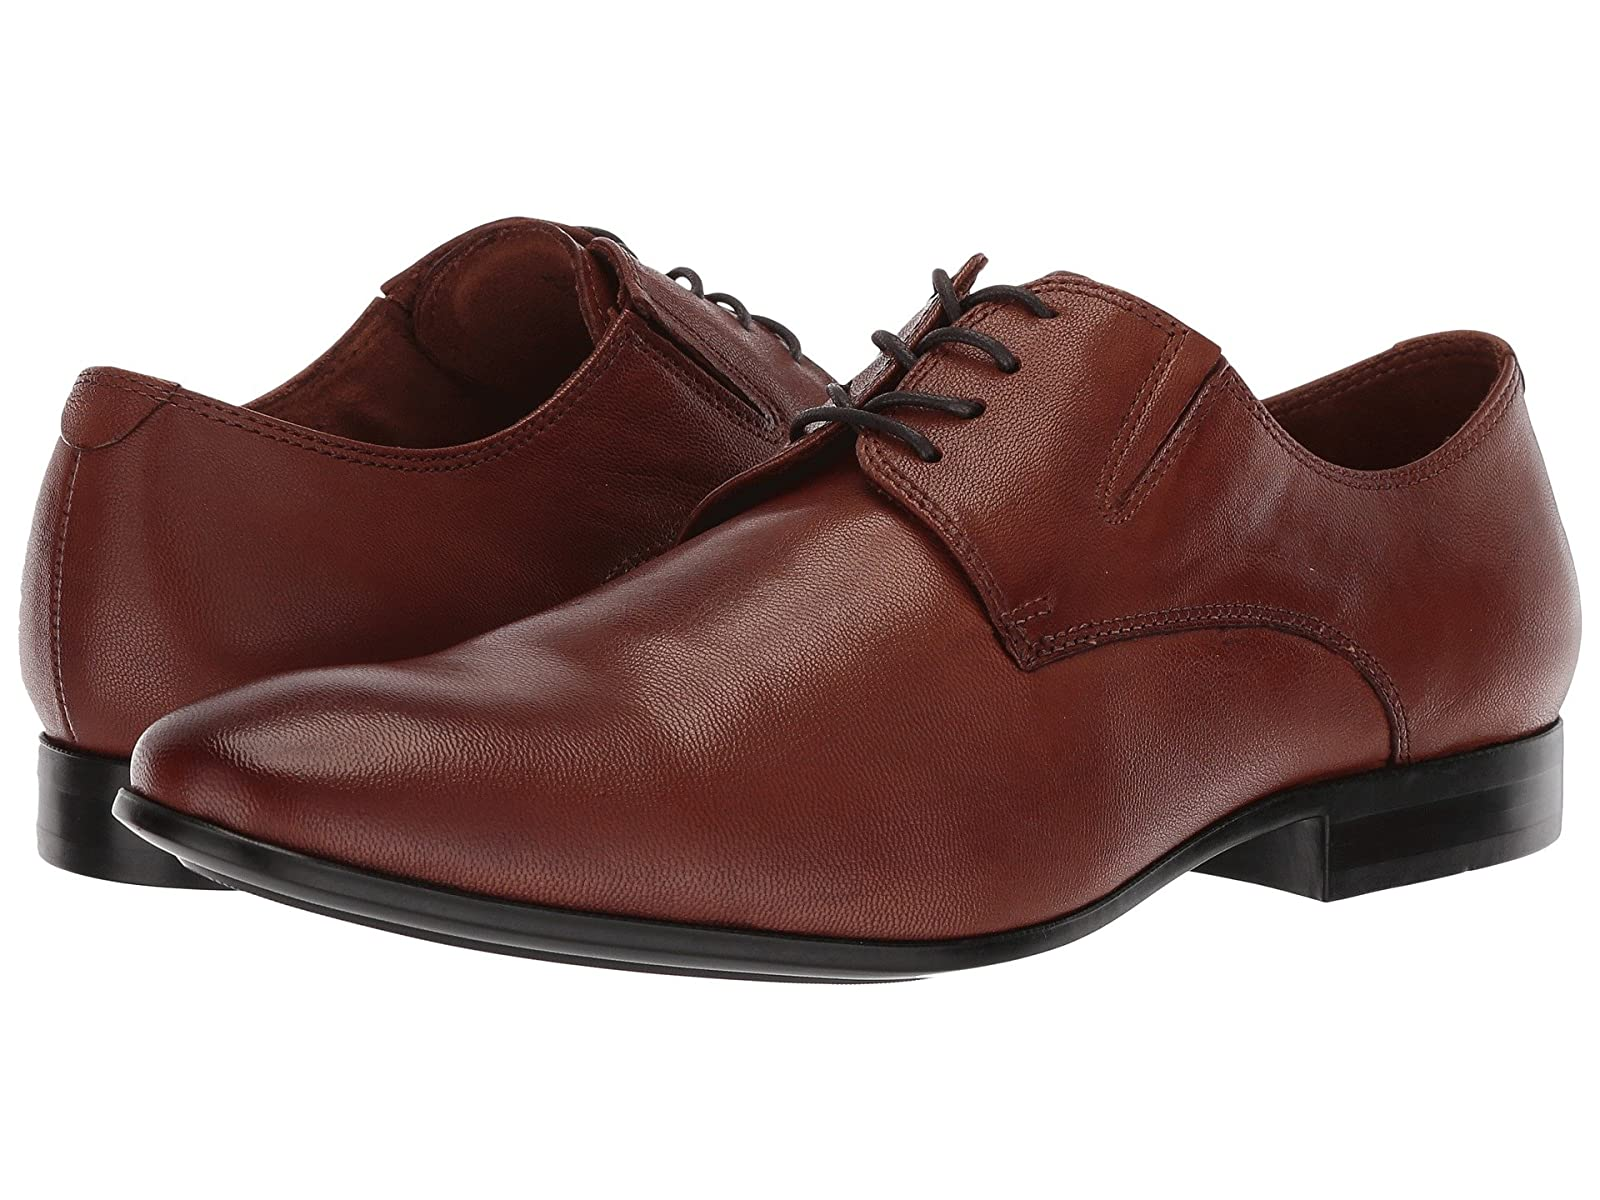 Kenneth Cole New York Mix-ErAtmospheric grades have affordable shoes